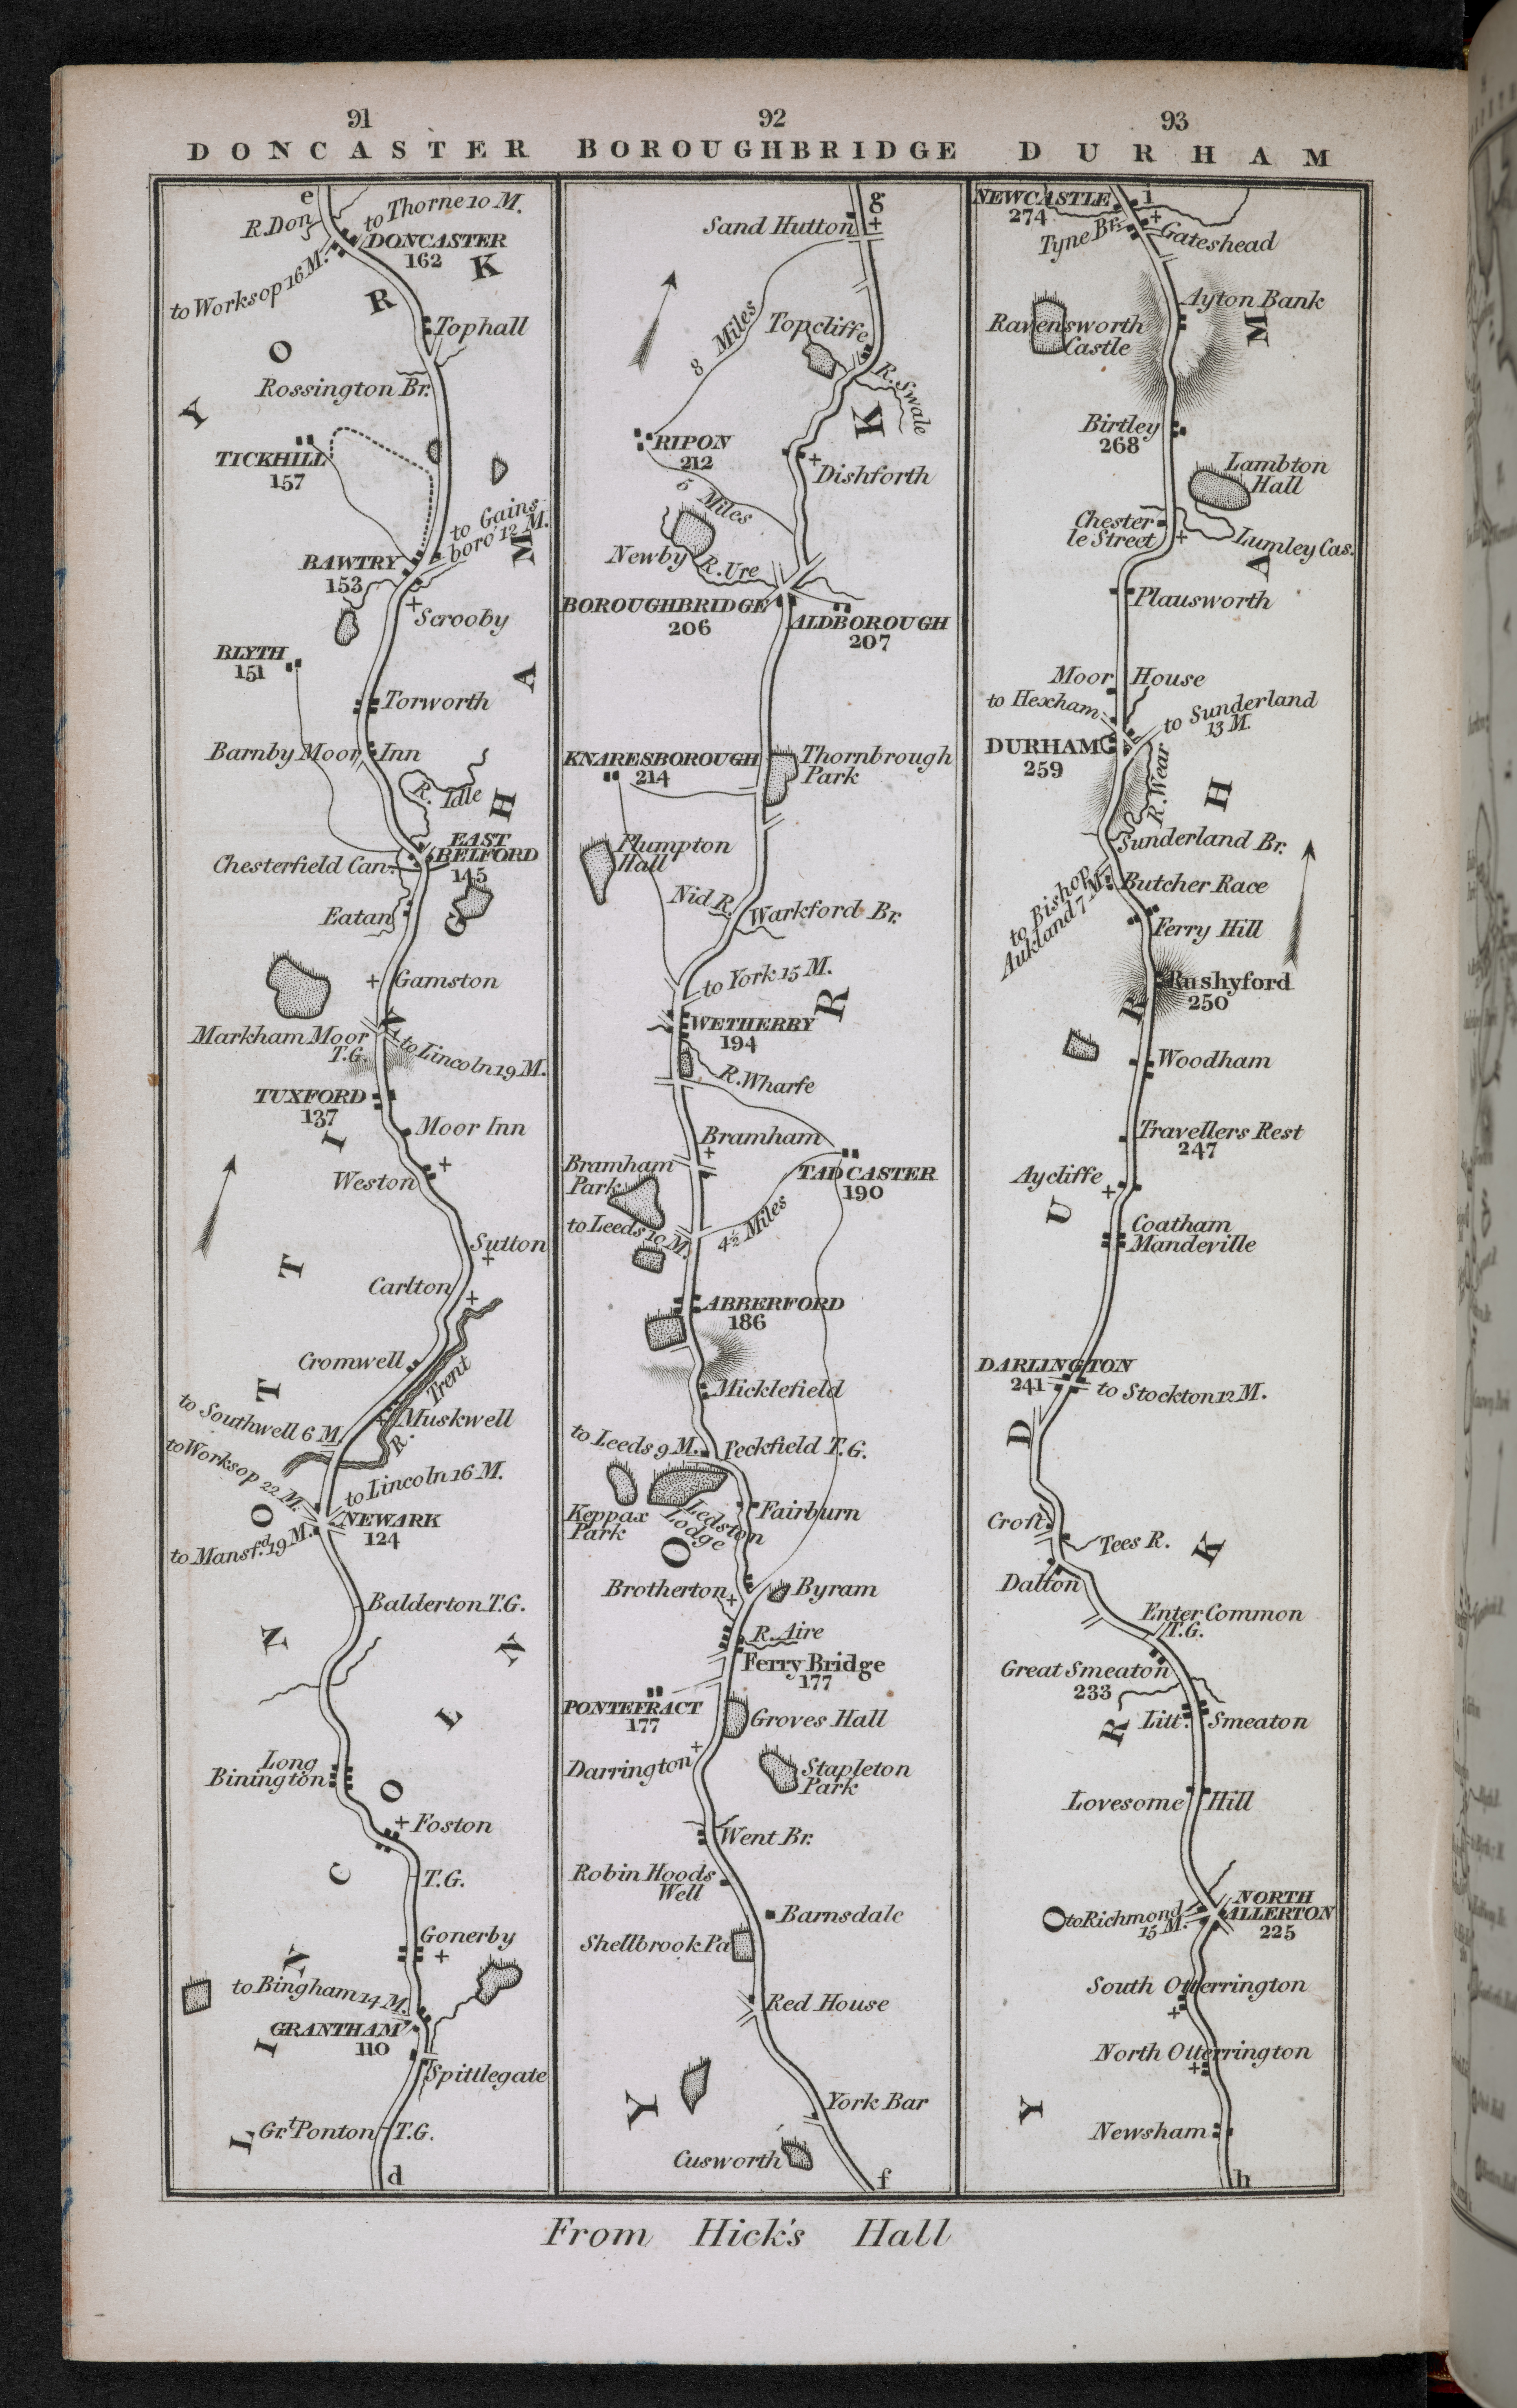 Roads between Grantham and Newcastle, in Charles Smith's New Pocket Companion (1826)